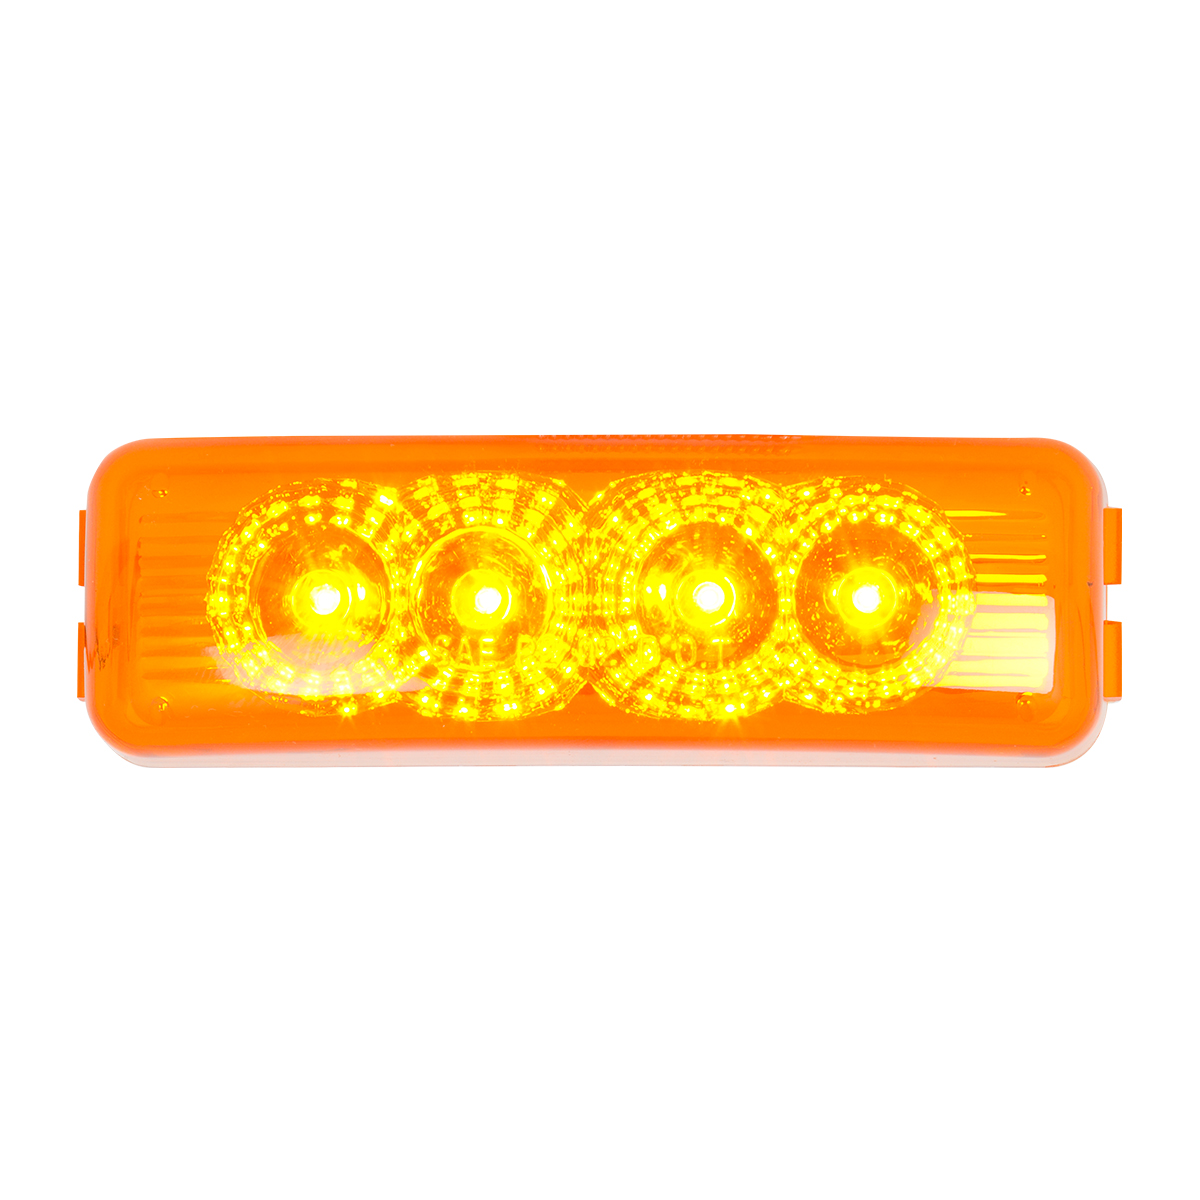 77960 Medium Rectangular Spyder LED Marker Light